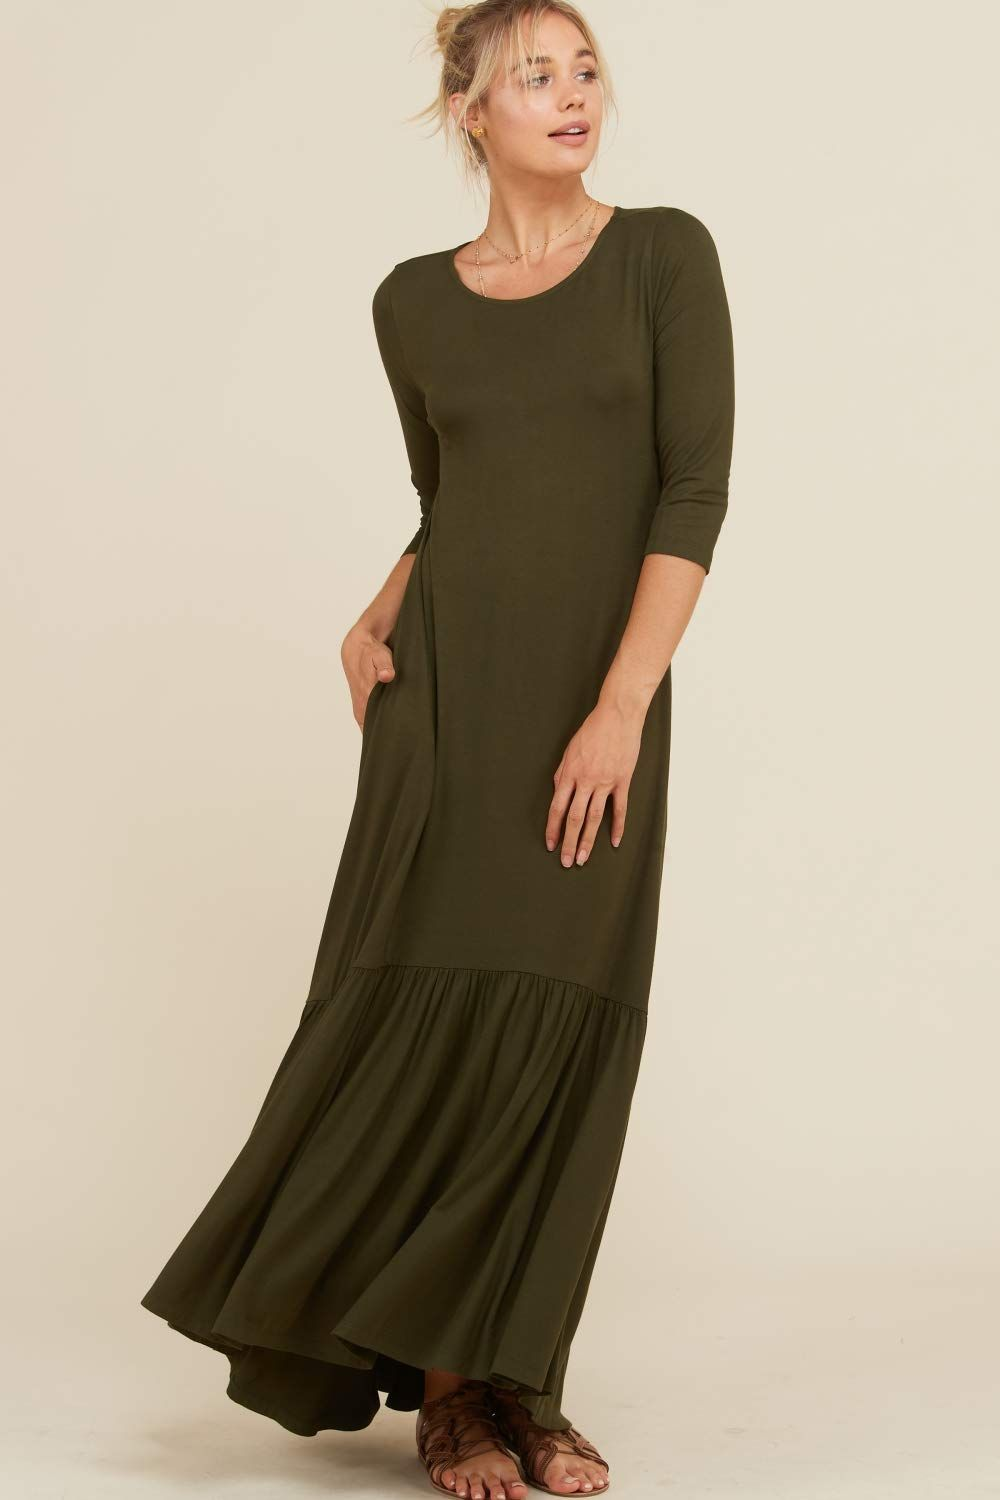 1dccacca5165c4 Annabelle Womens 3 4 Sleeve Long Maxi Dresses With Side Pockets – DACC